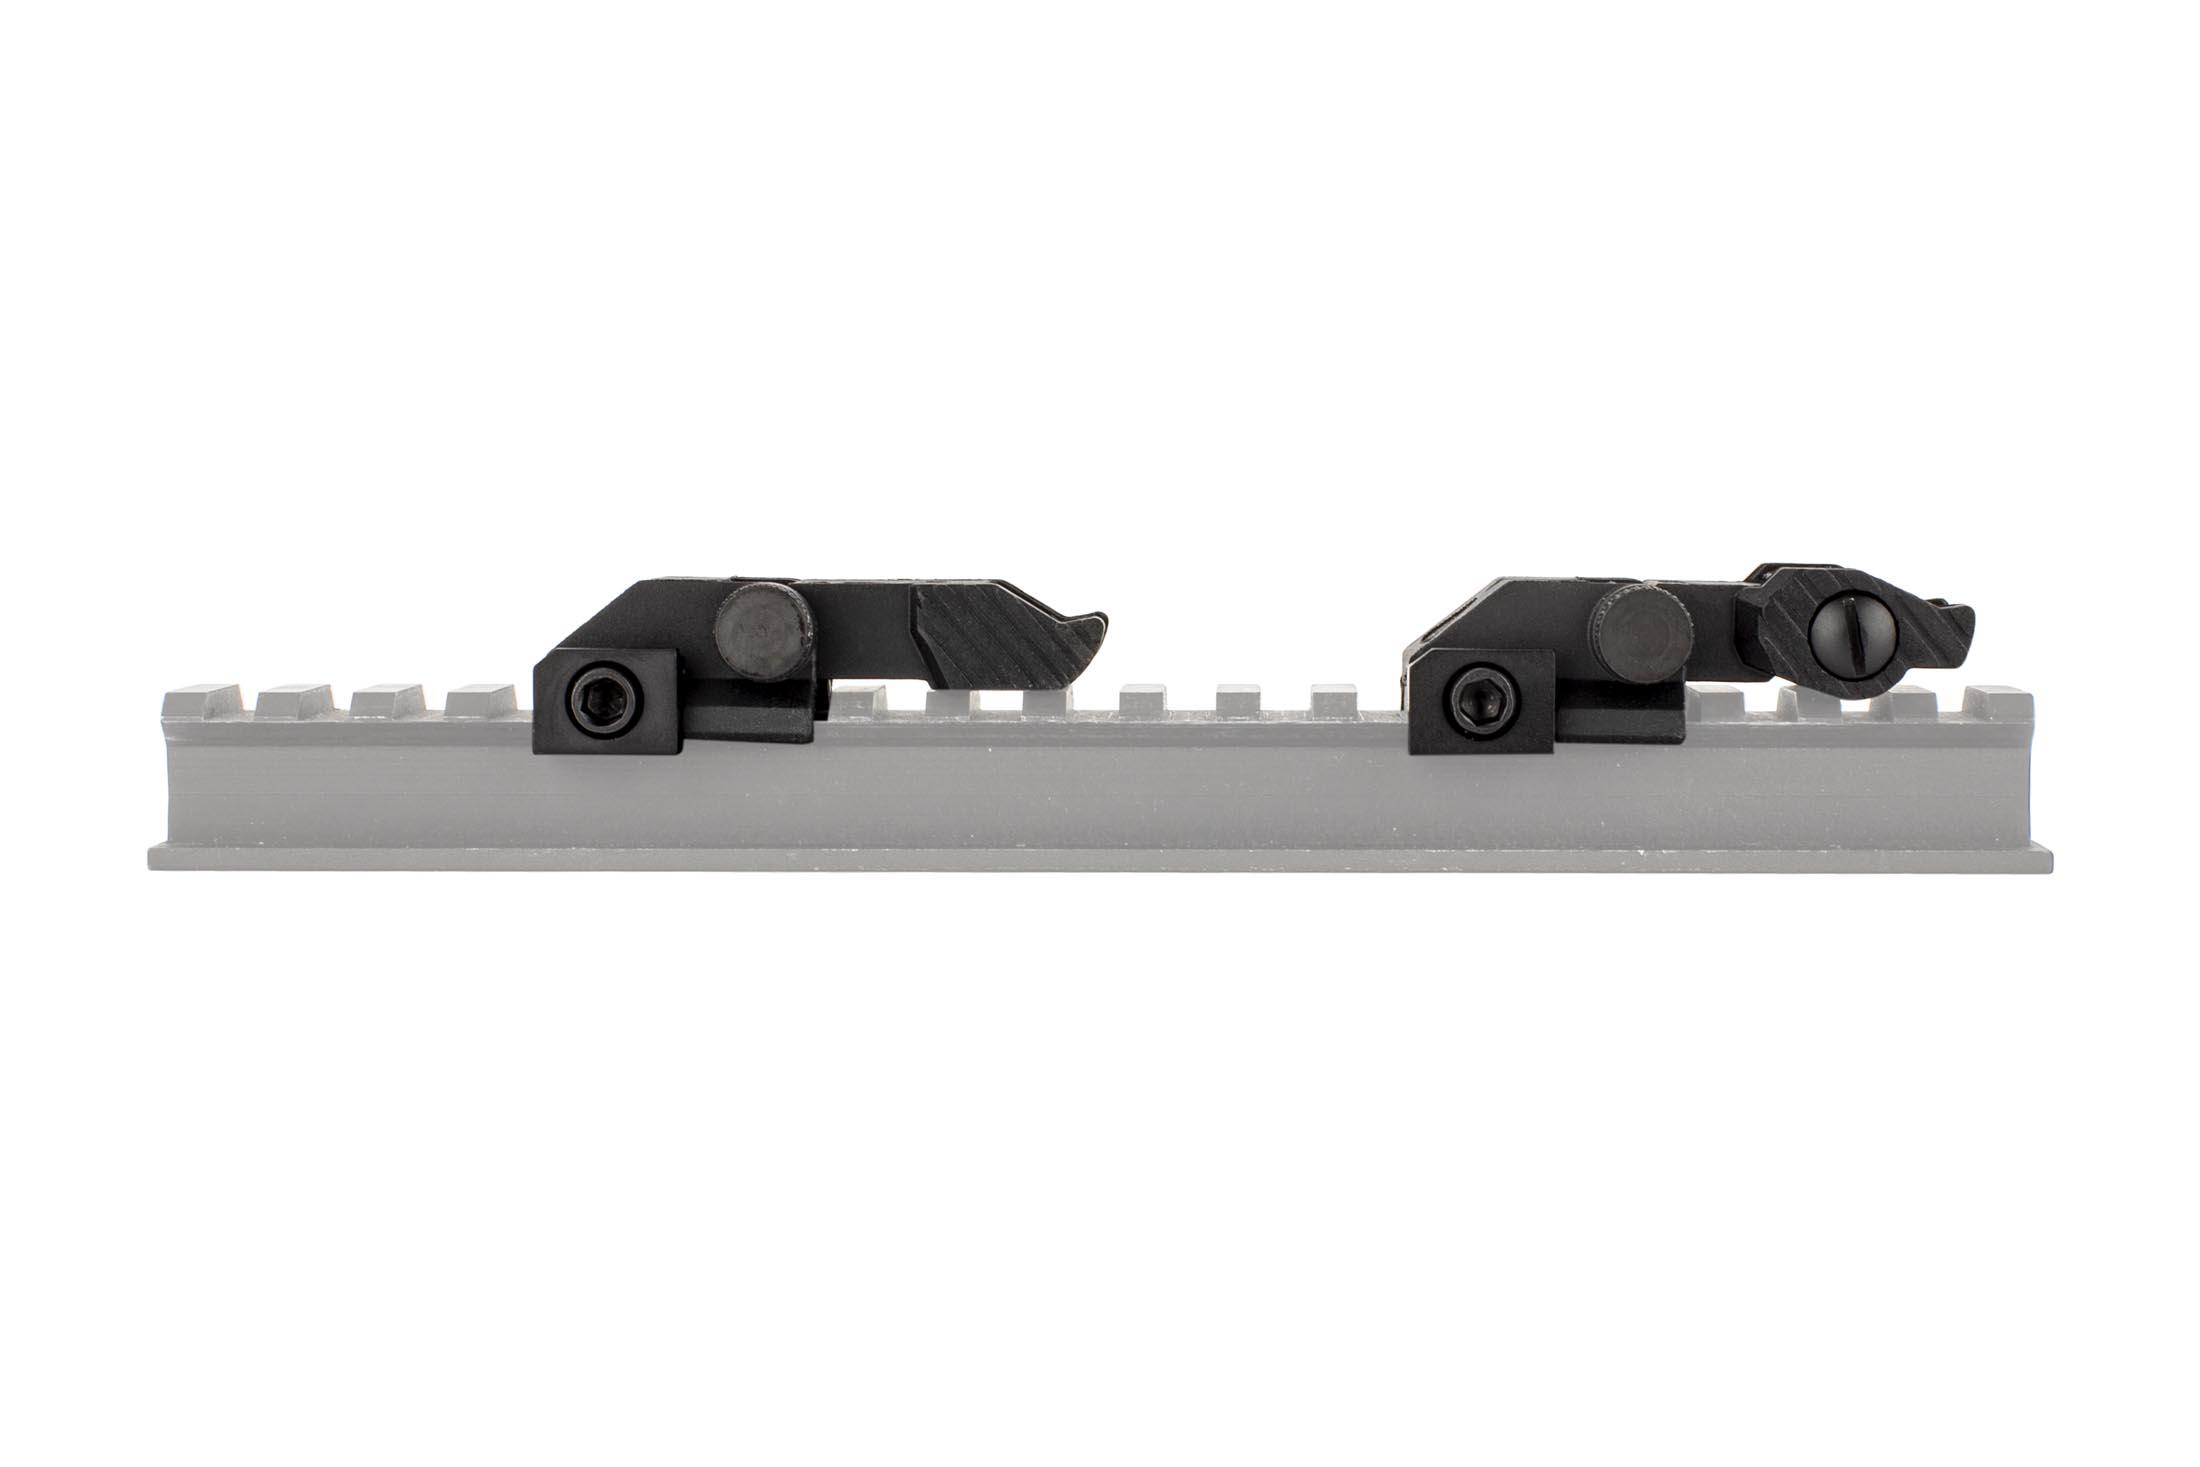 The Guntec USA EZ AR15 folding sights set are extremely low profile